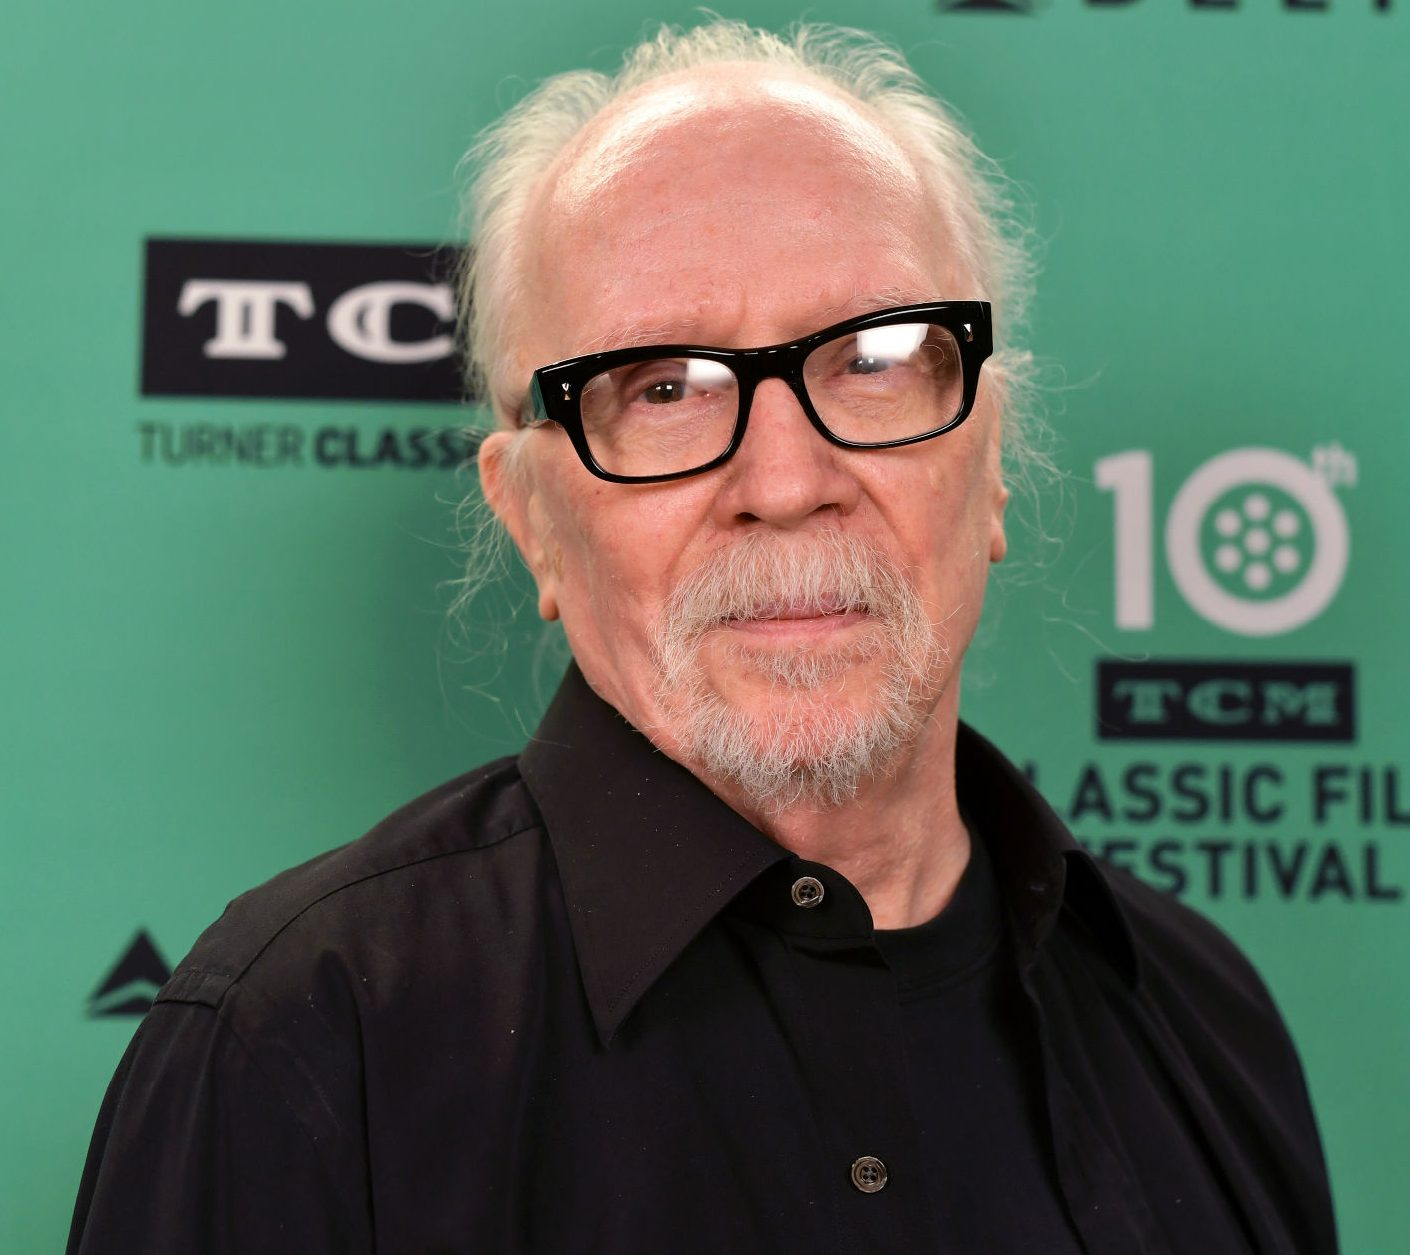 John Carpenter e1608201757786 20 Things You Didn't Know About Escape From LA